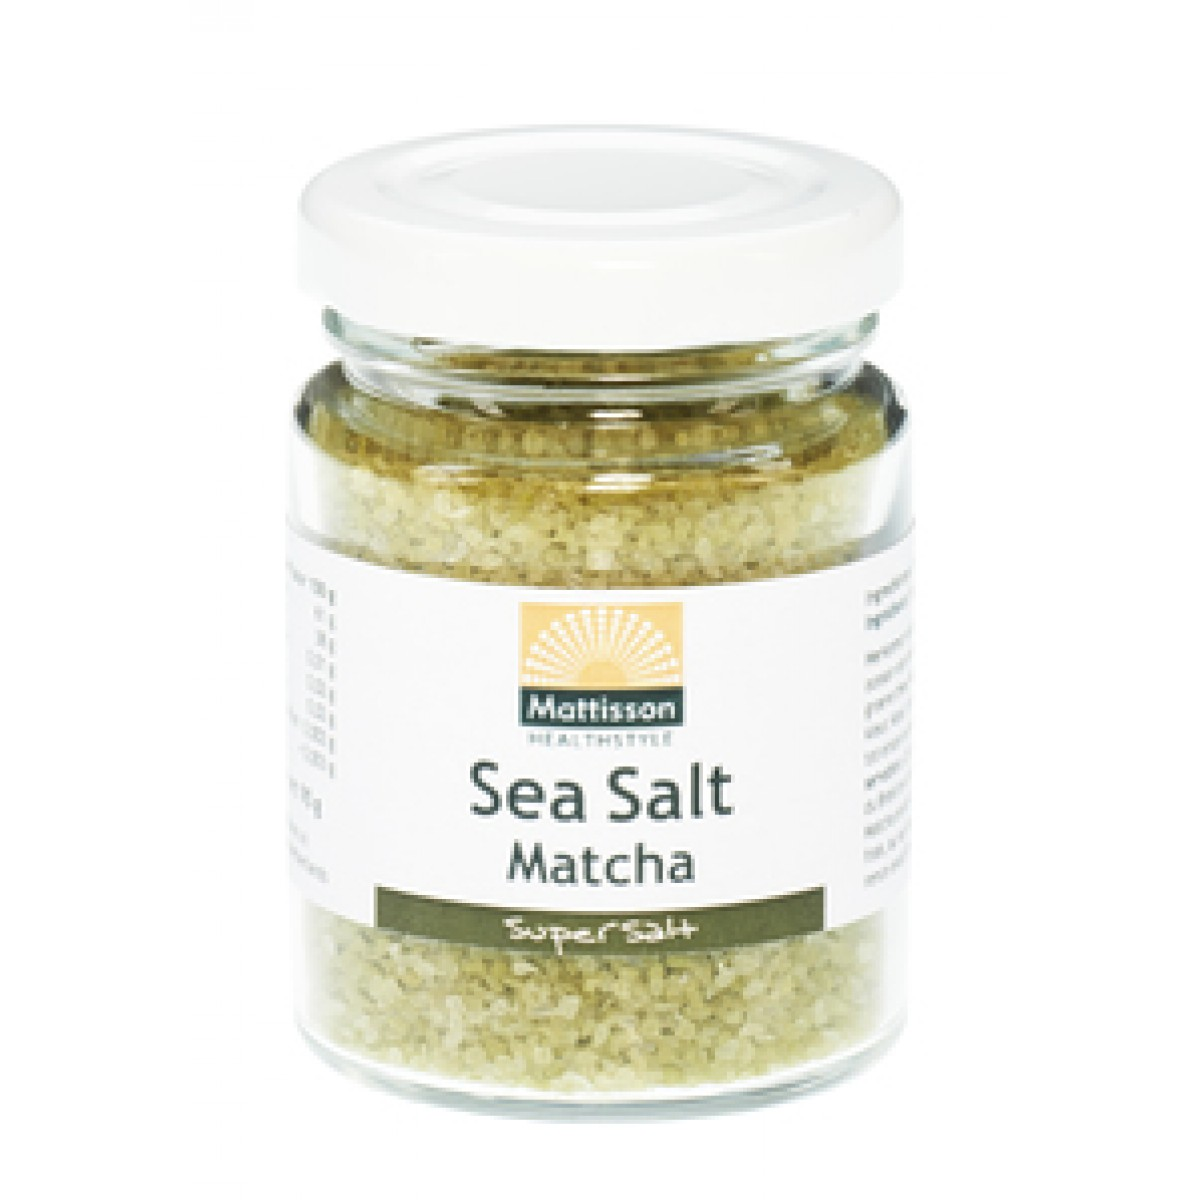 Sea Salt Matcha